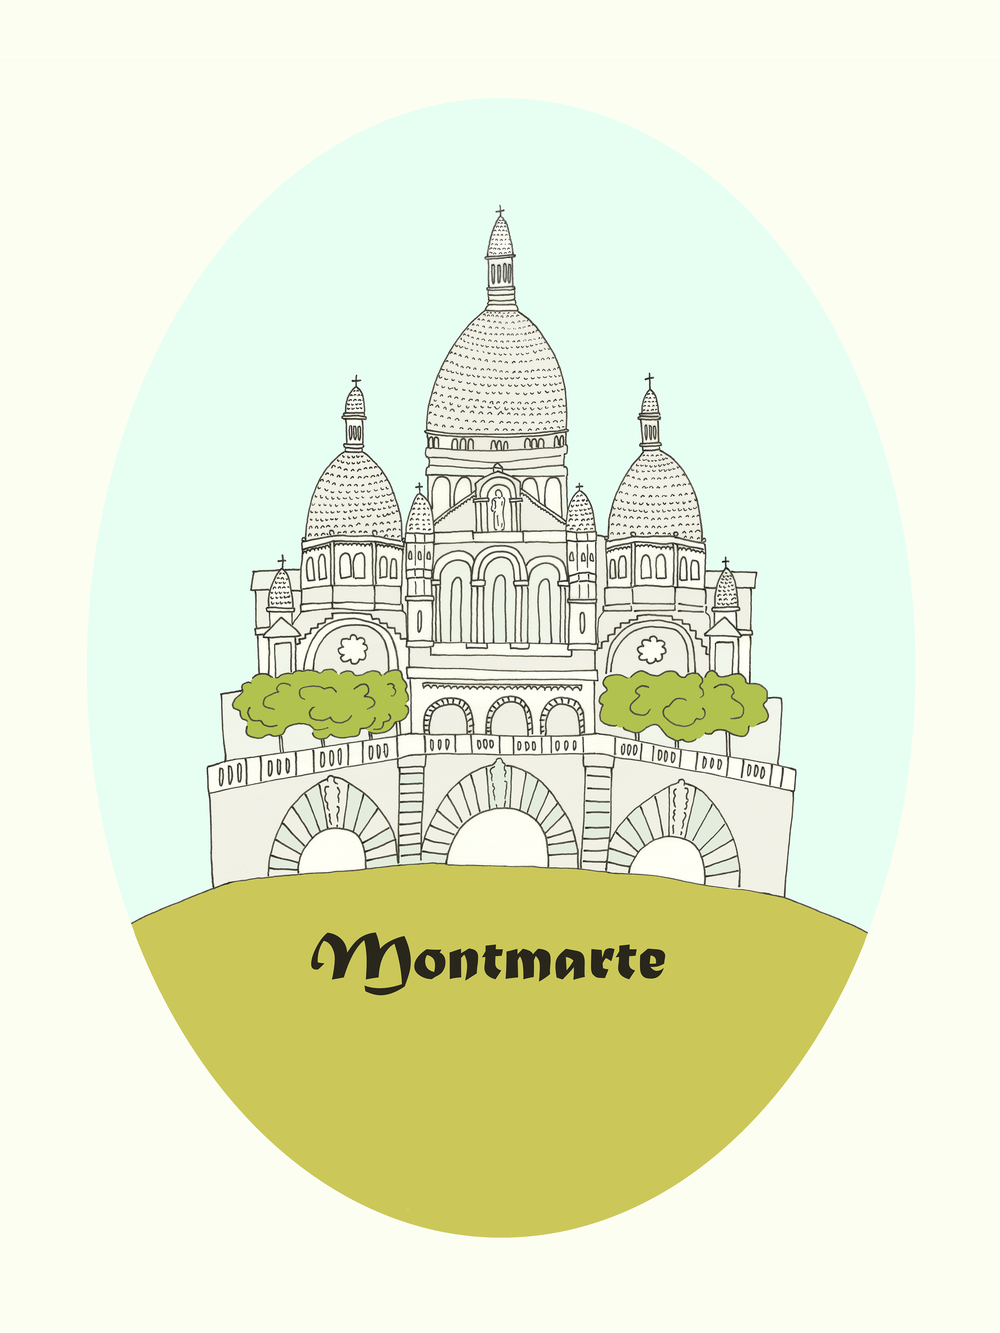 Montmarte by Kate Zaremba